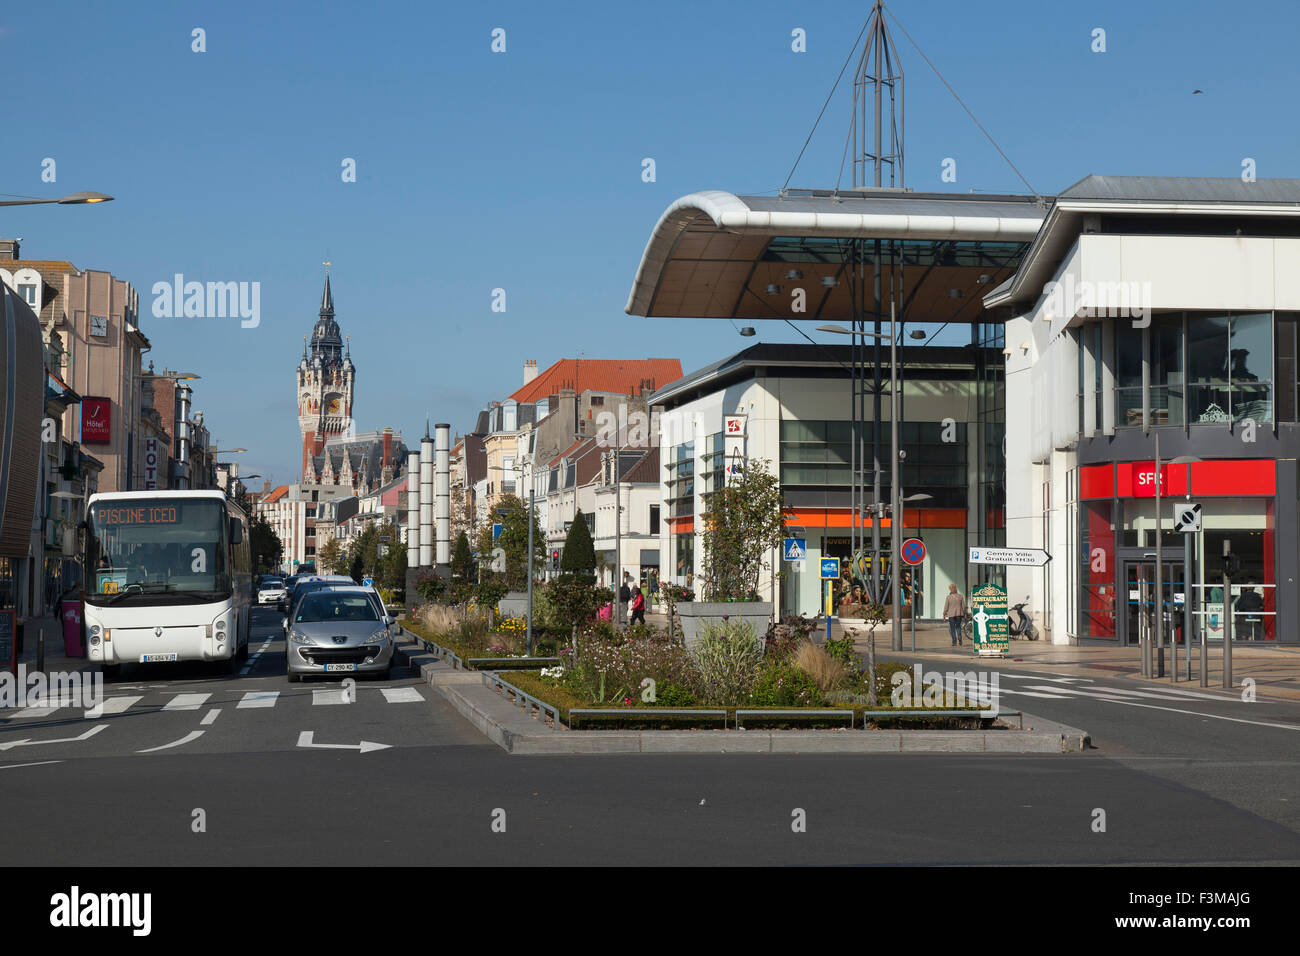 Main street in Calais France - Stock Image